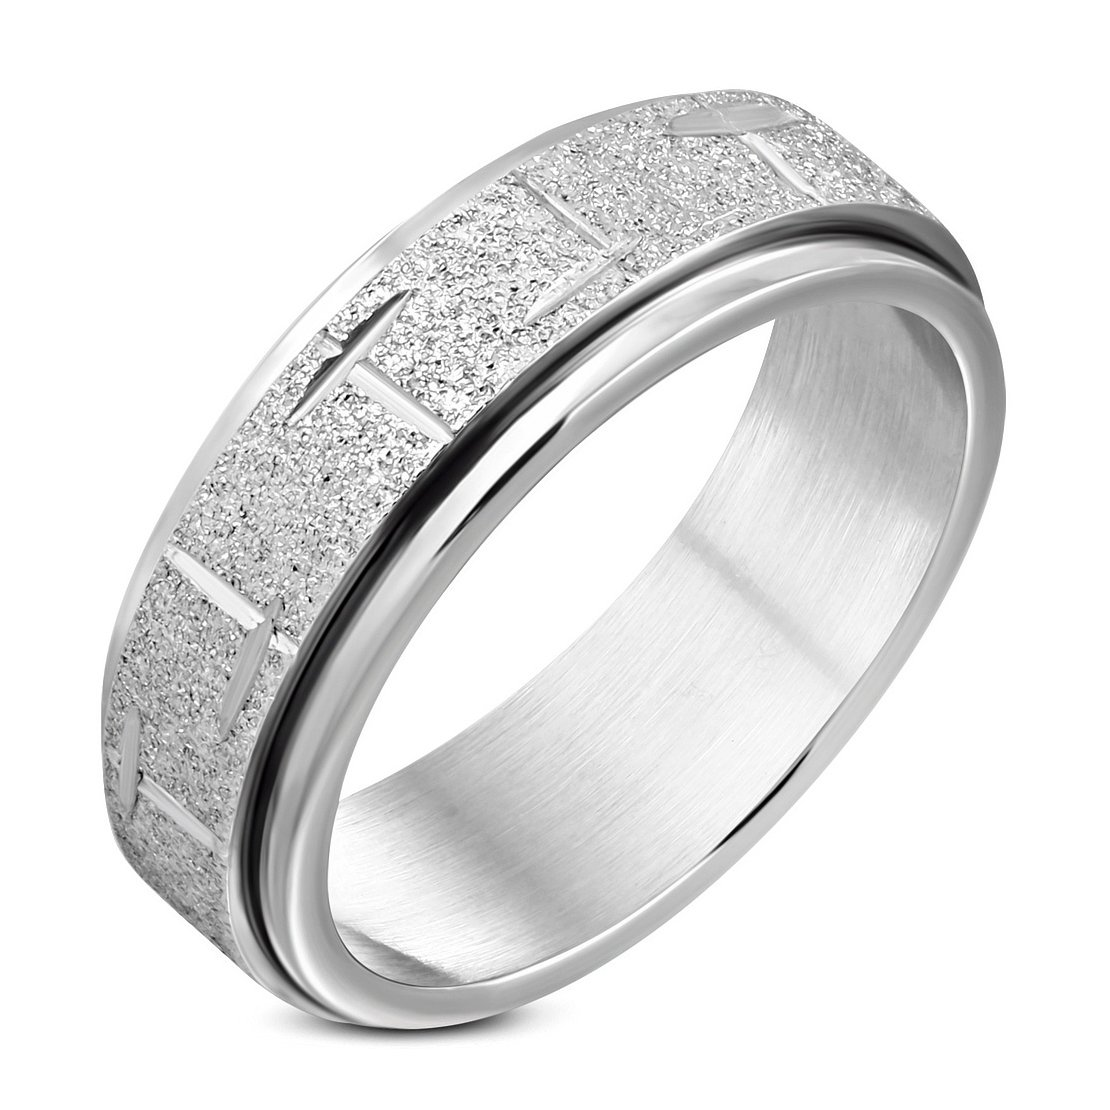 Stainless Steel Sandblasted Diamond-Cut Cross Spinning Flat Band Ring